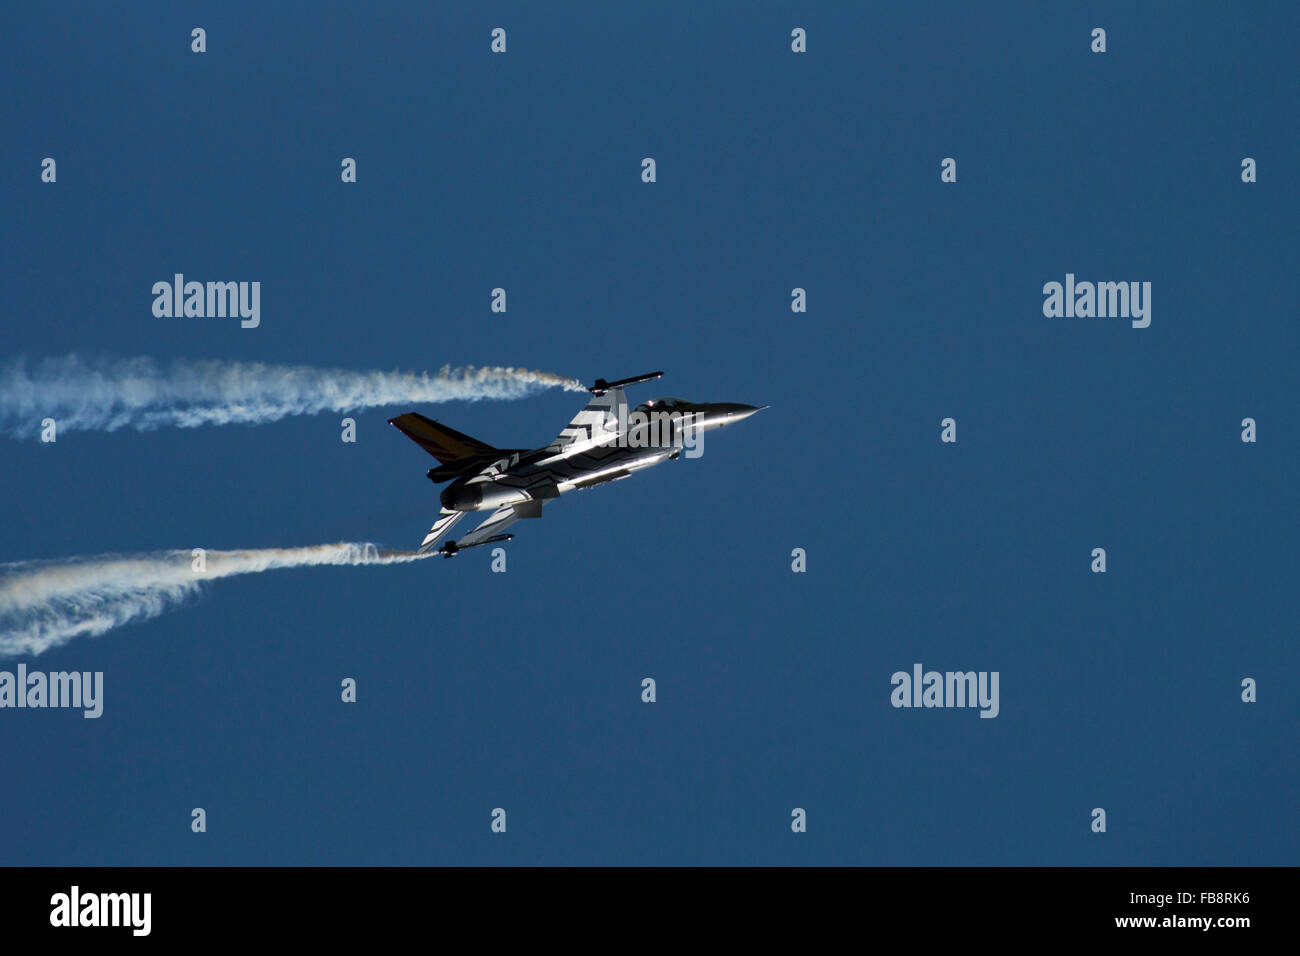 Fighter jet aeroplane with missiles against dark blue sky with white smoke at air show. International Air Tattoo Stock Photo